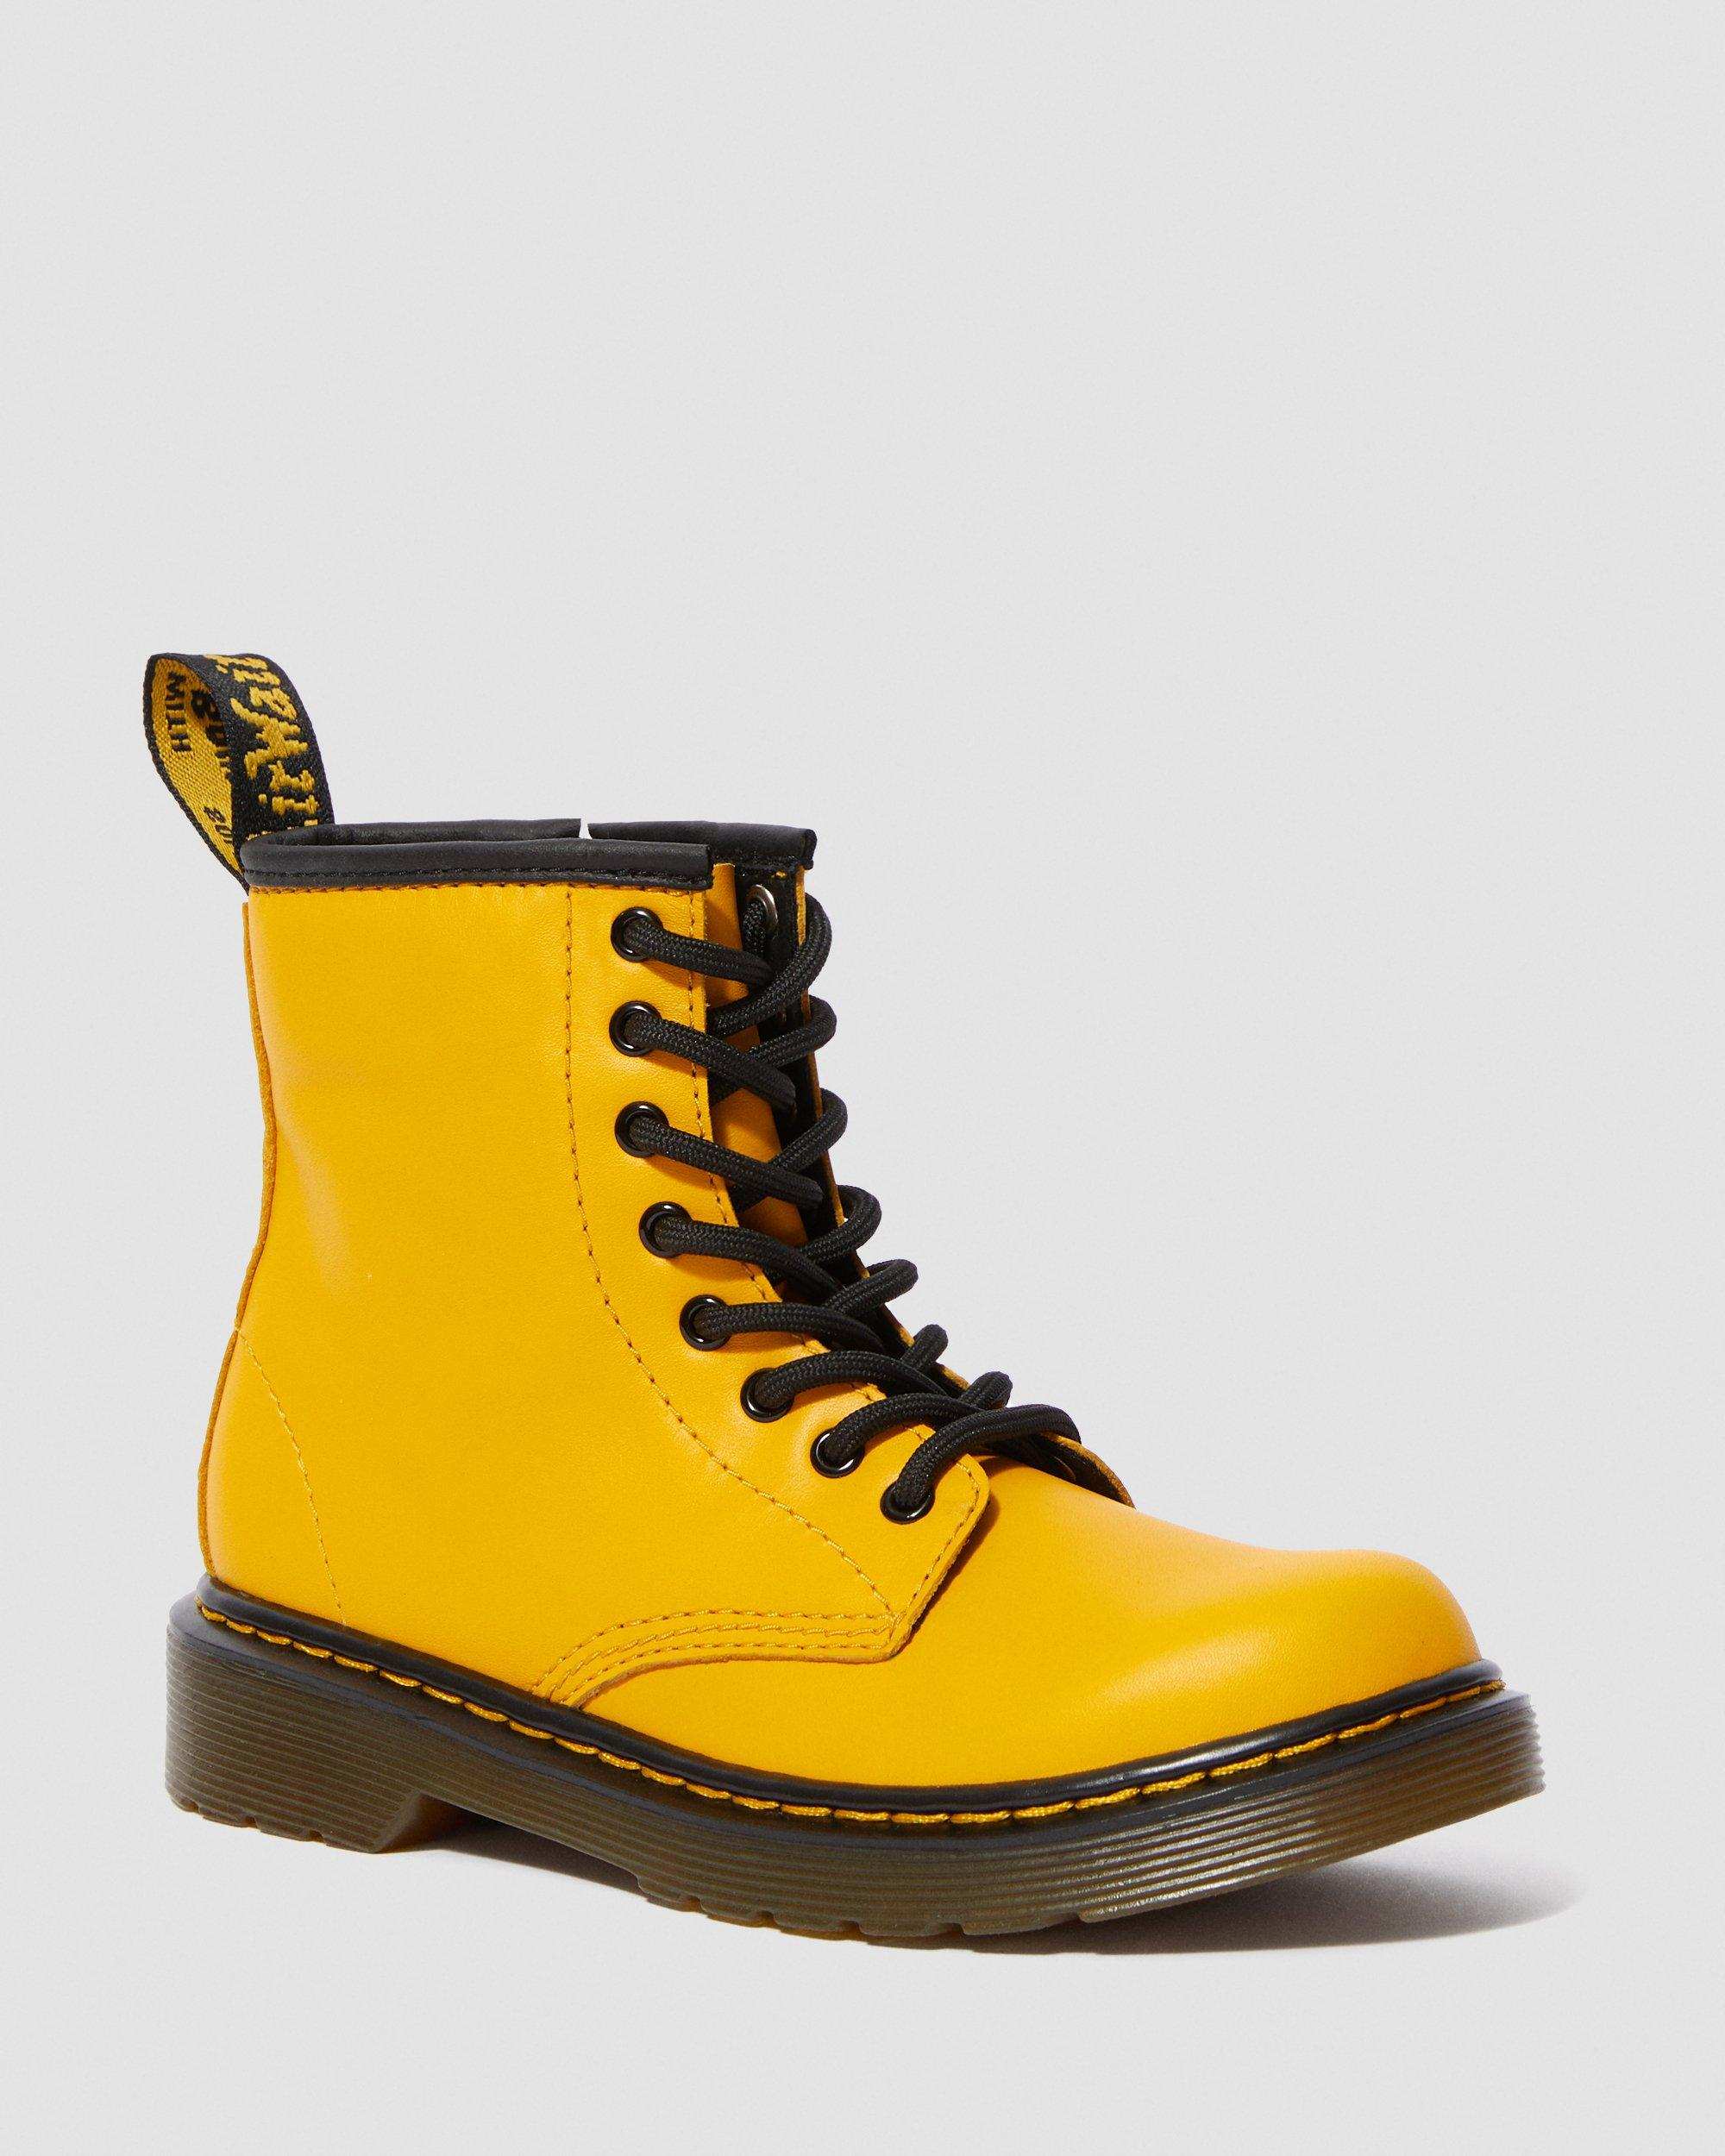 Stivali DonnaUomo | 1460 Colour Pop Yellow Smooth | Dr. Martens